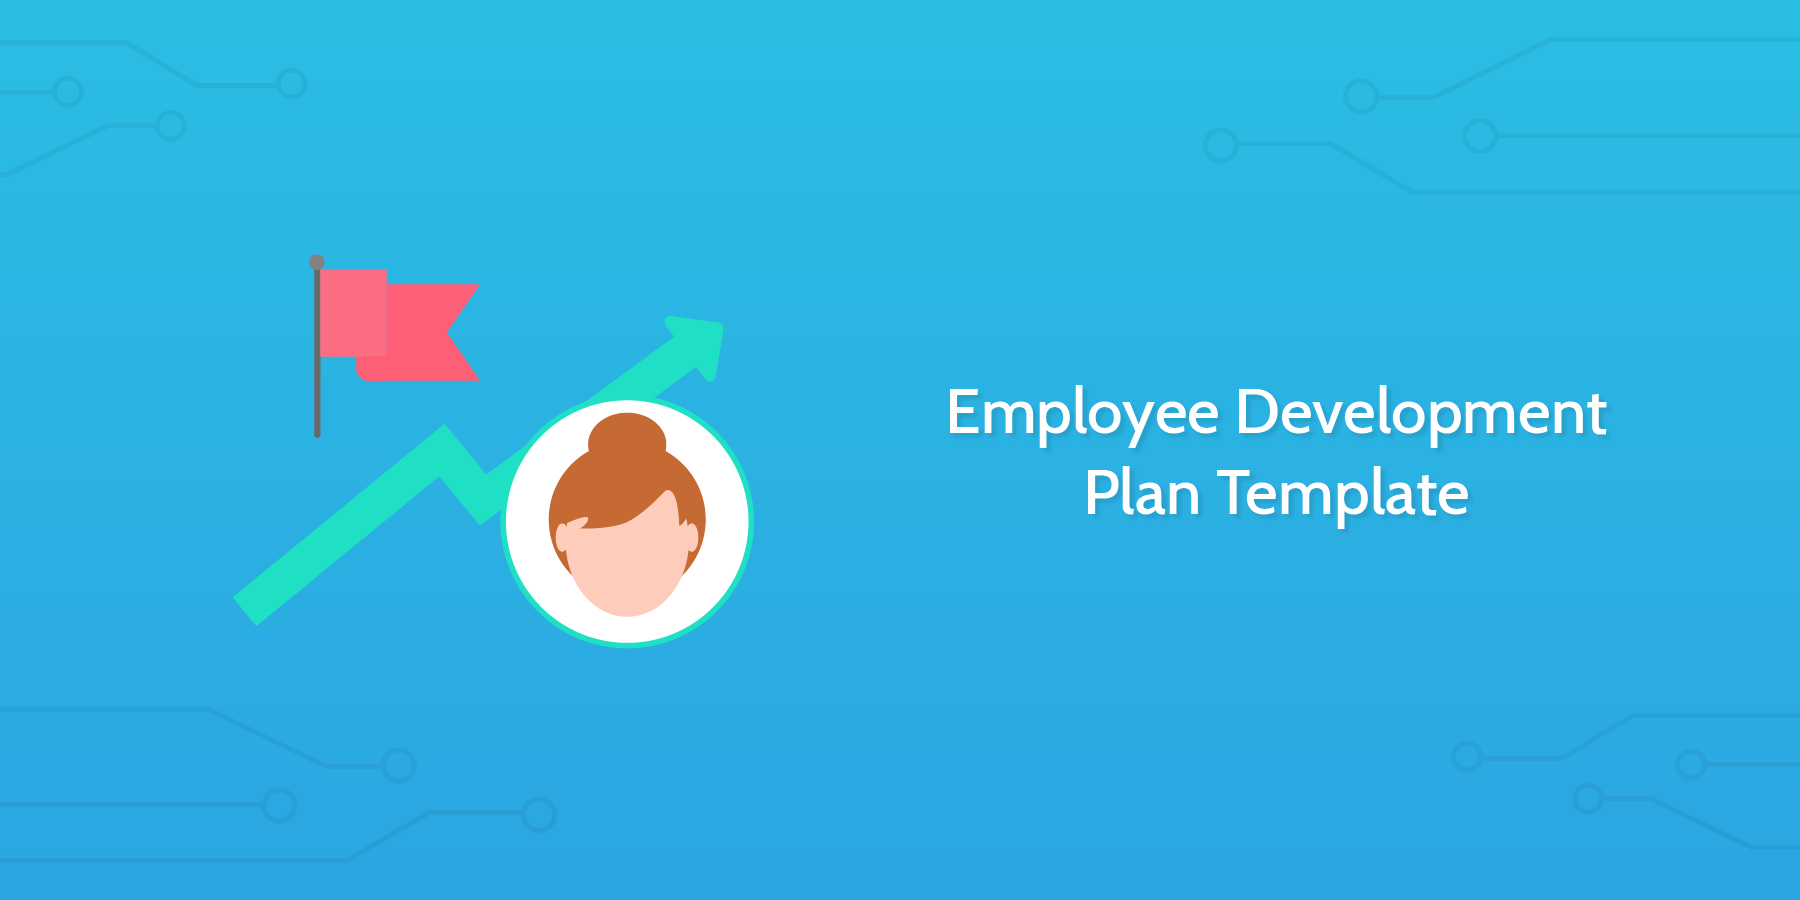 Introduction to the Employee Development Plan Template: